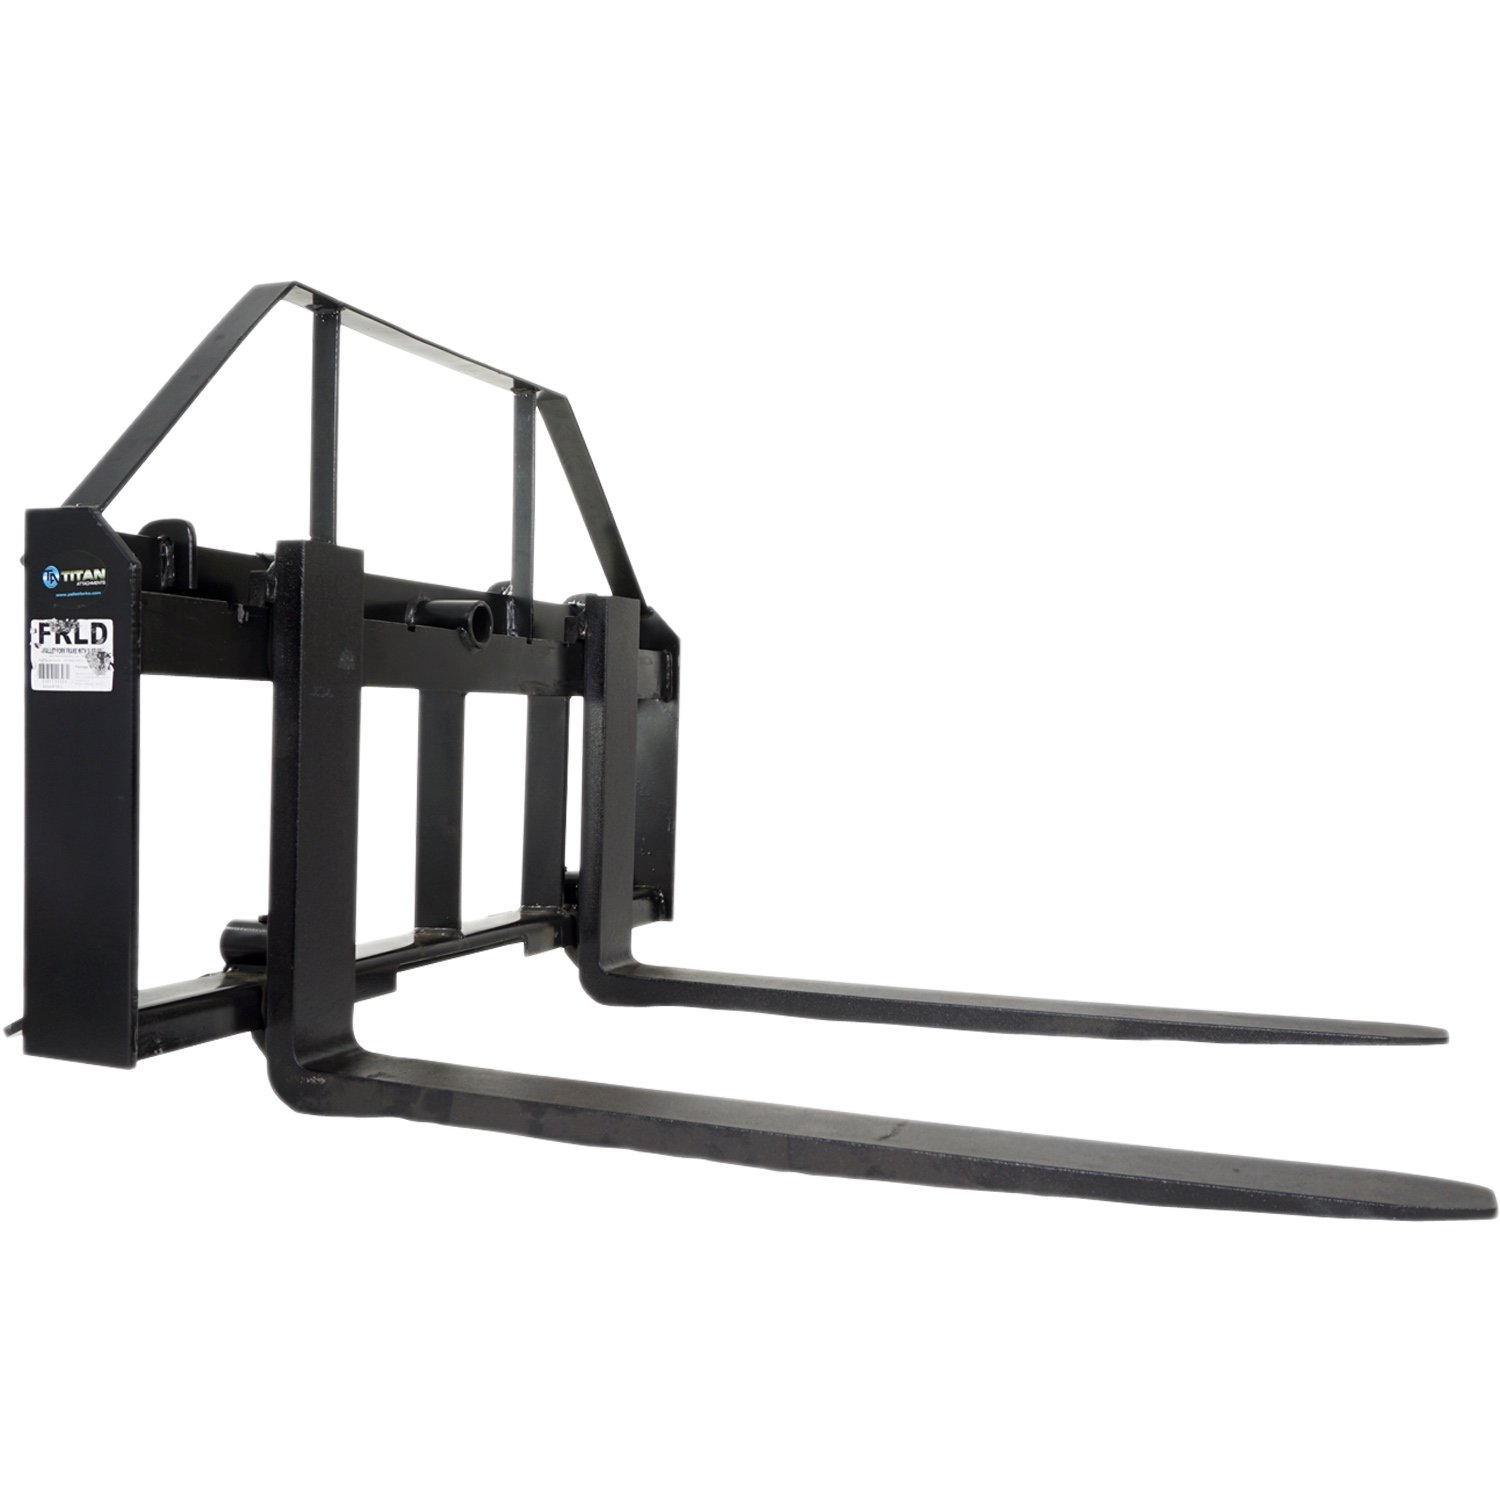 Titan 42'' Pallet Fork Attachment Tractor Kubota Holland Skid Steer Quick tach by Titan Attachments (Image #4)